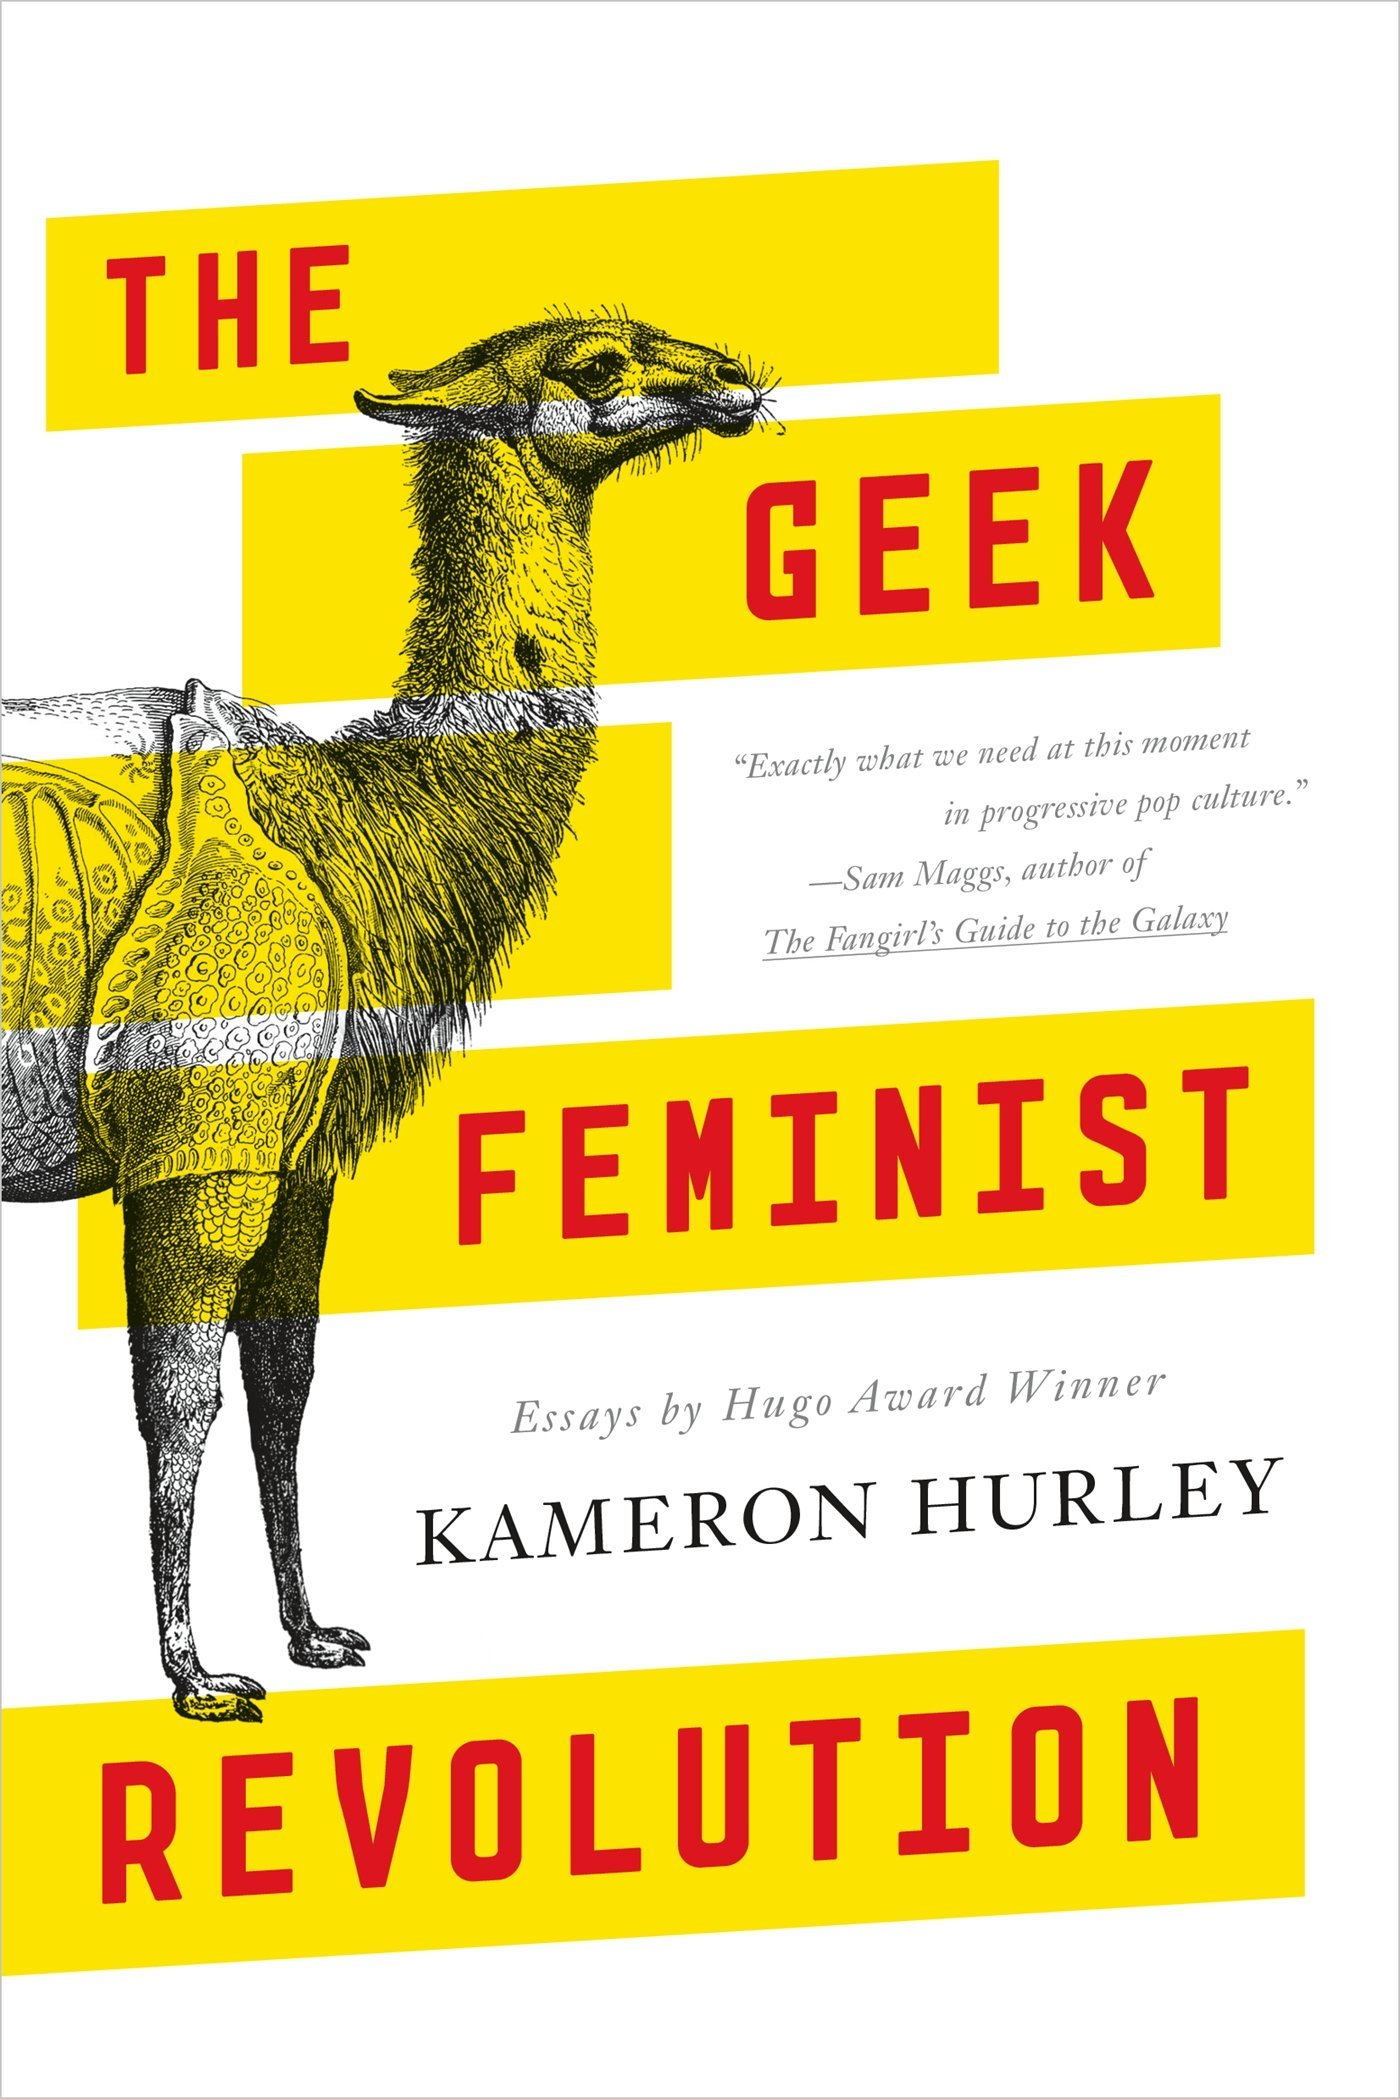 amazon com the geek feminist revolution essays 9780765386243 amazon com the geek feminist revolution essays 9780765386243 kameron hurley books